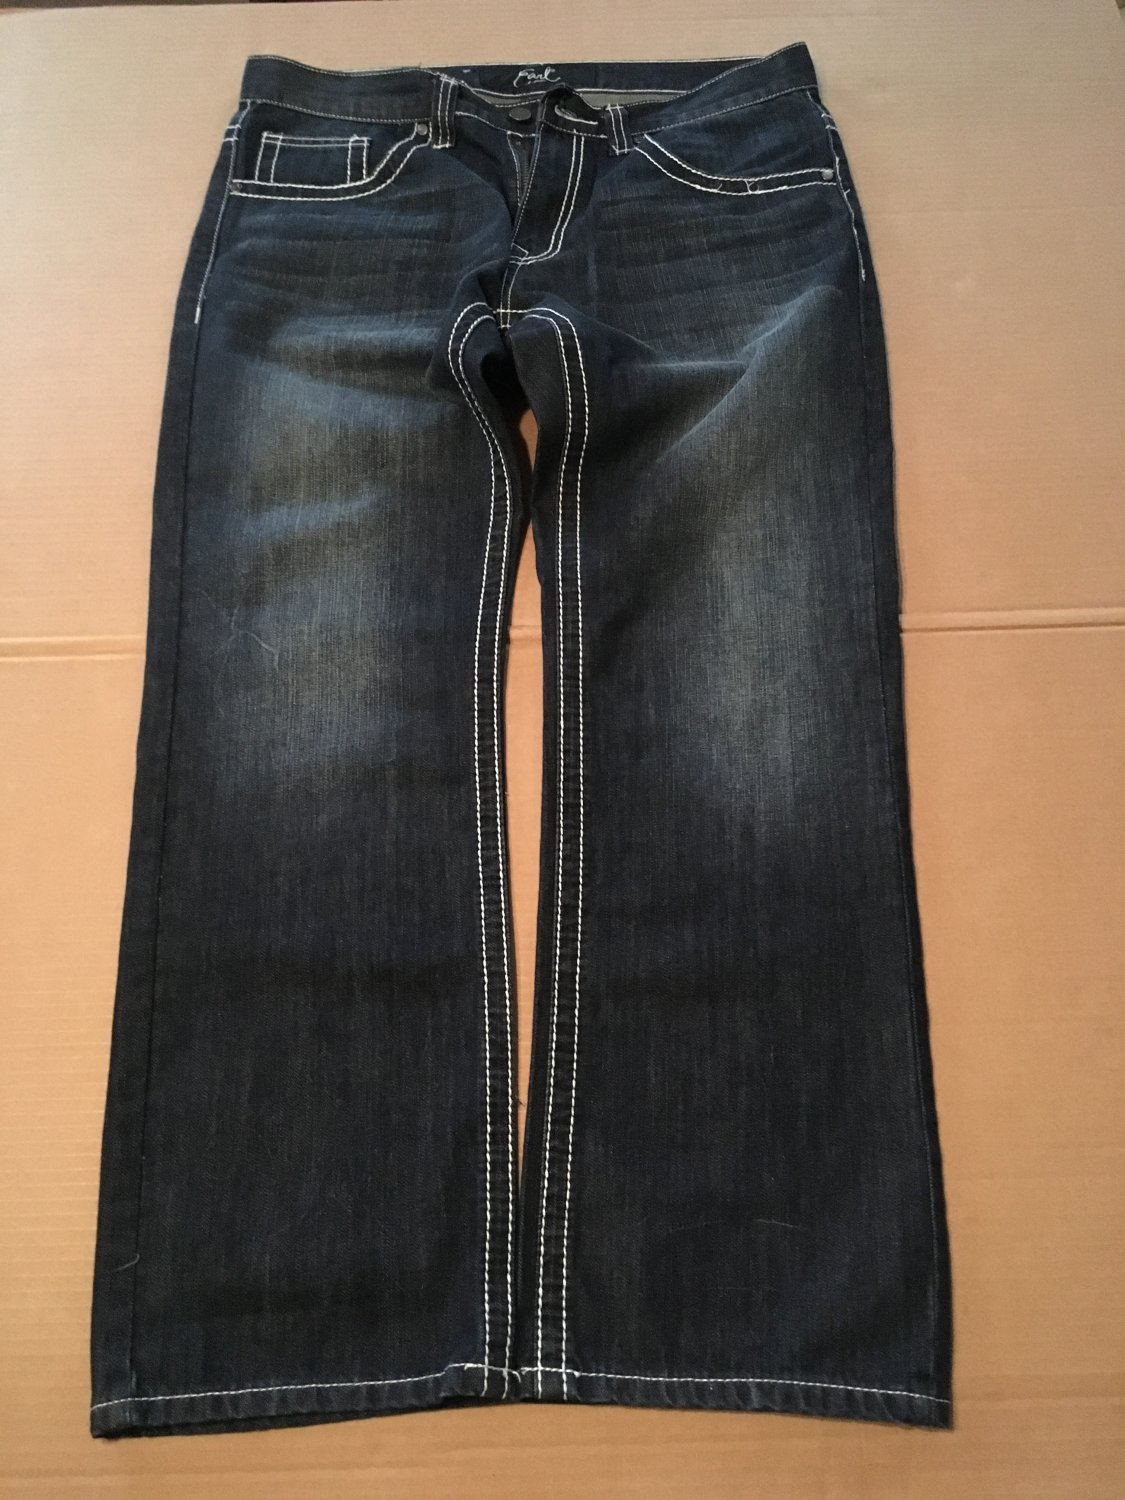 Earl Jean Blue Jeans White Outline Men's Size 34 / 32